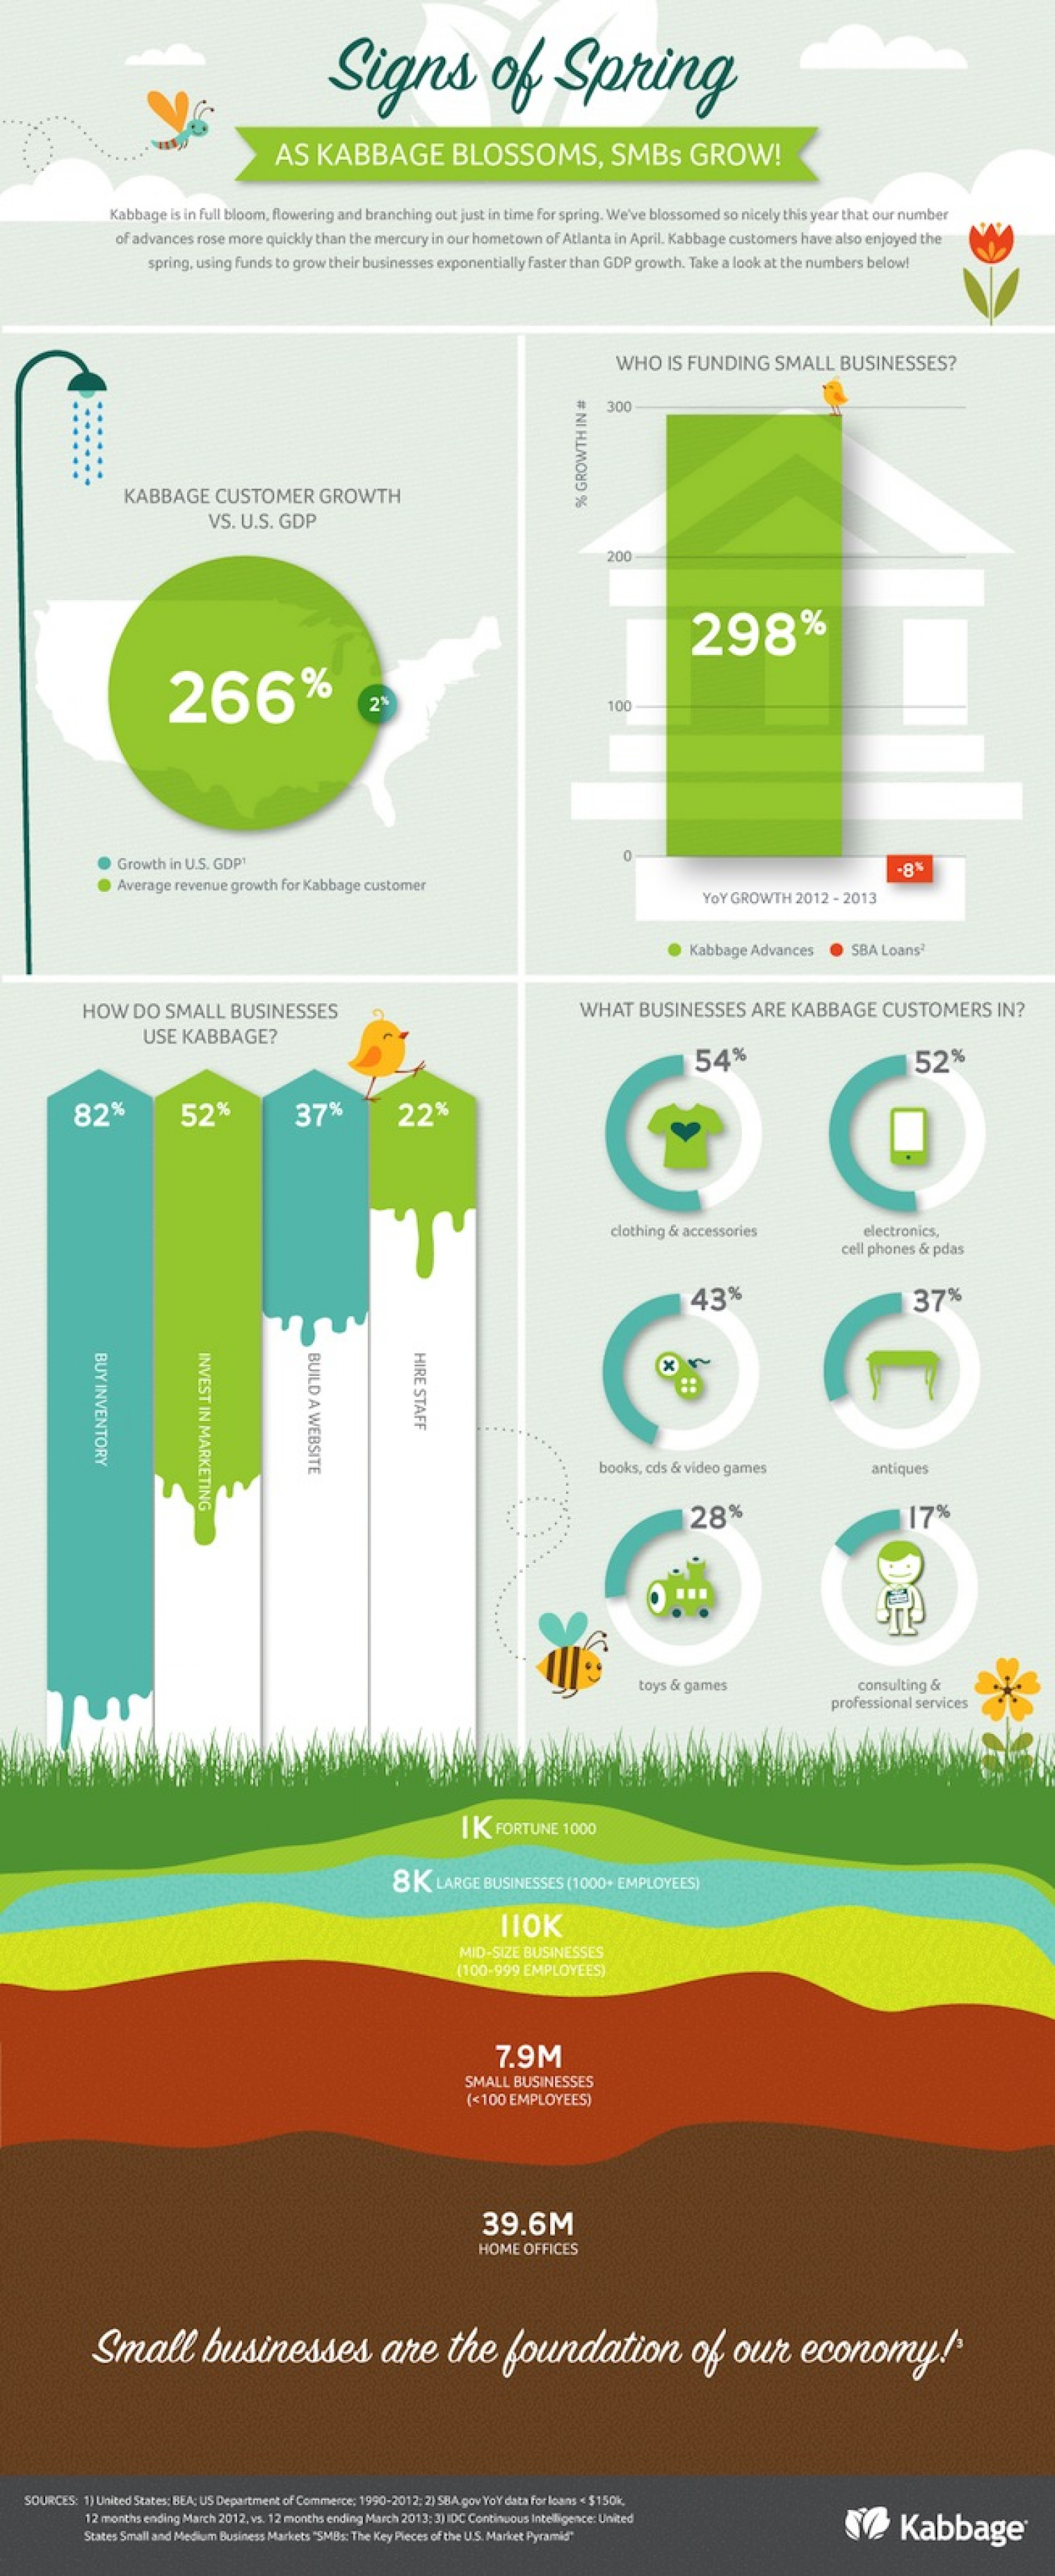 Kabbage and small businesses are growing together Infographic